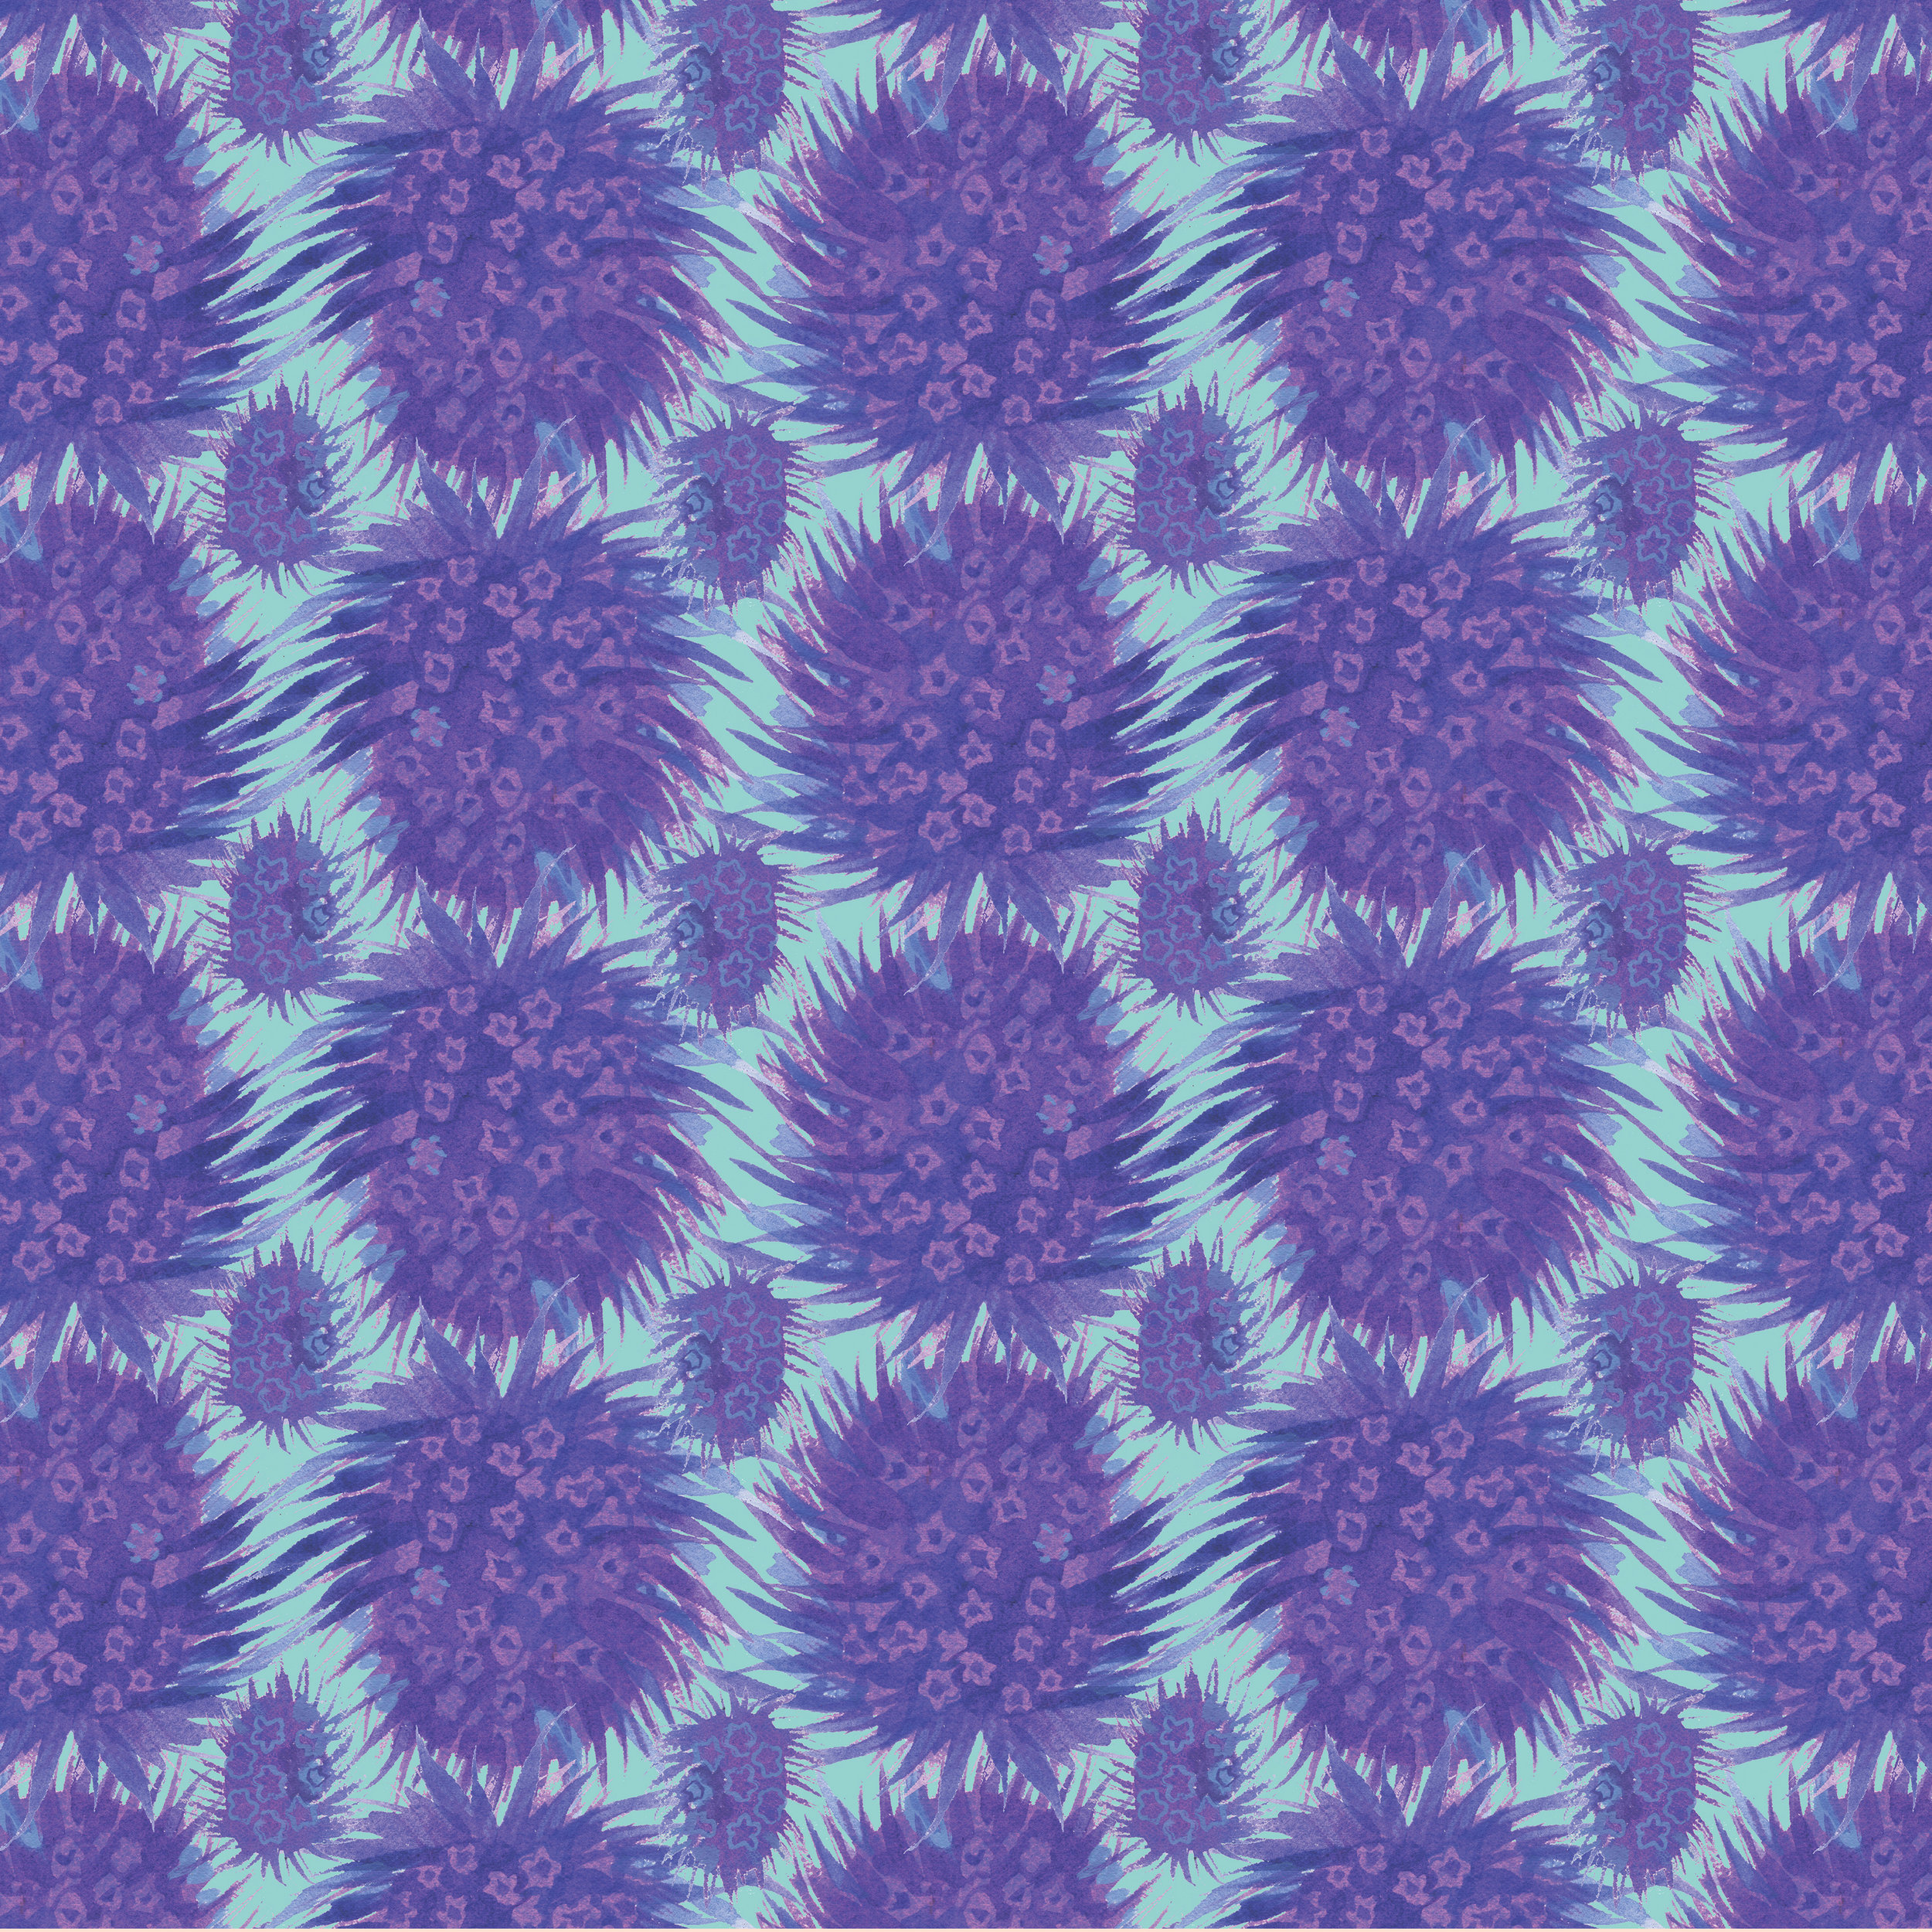 purple-teasel-pattern.jpg